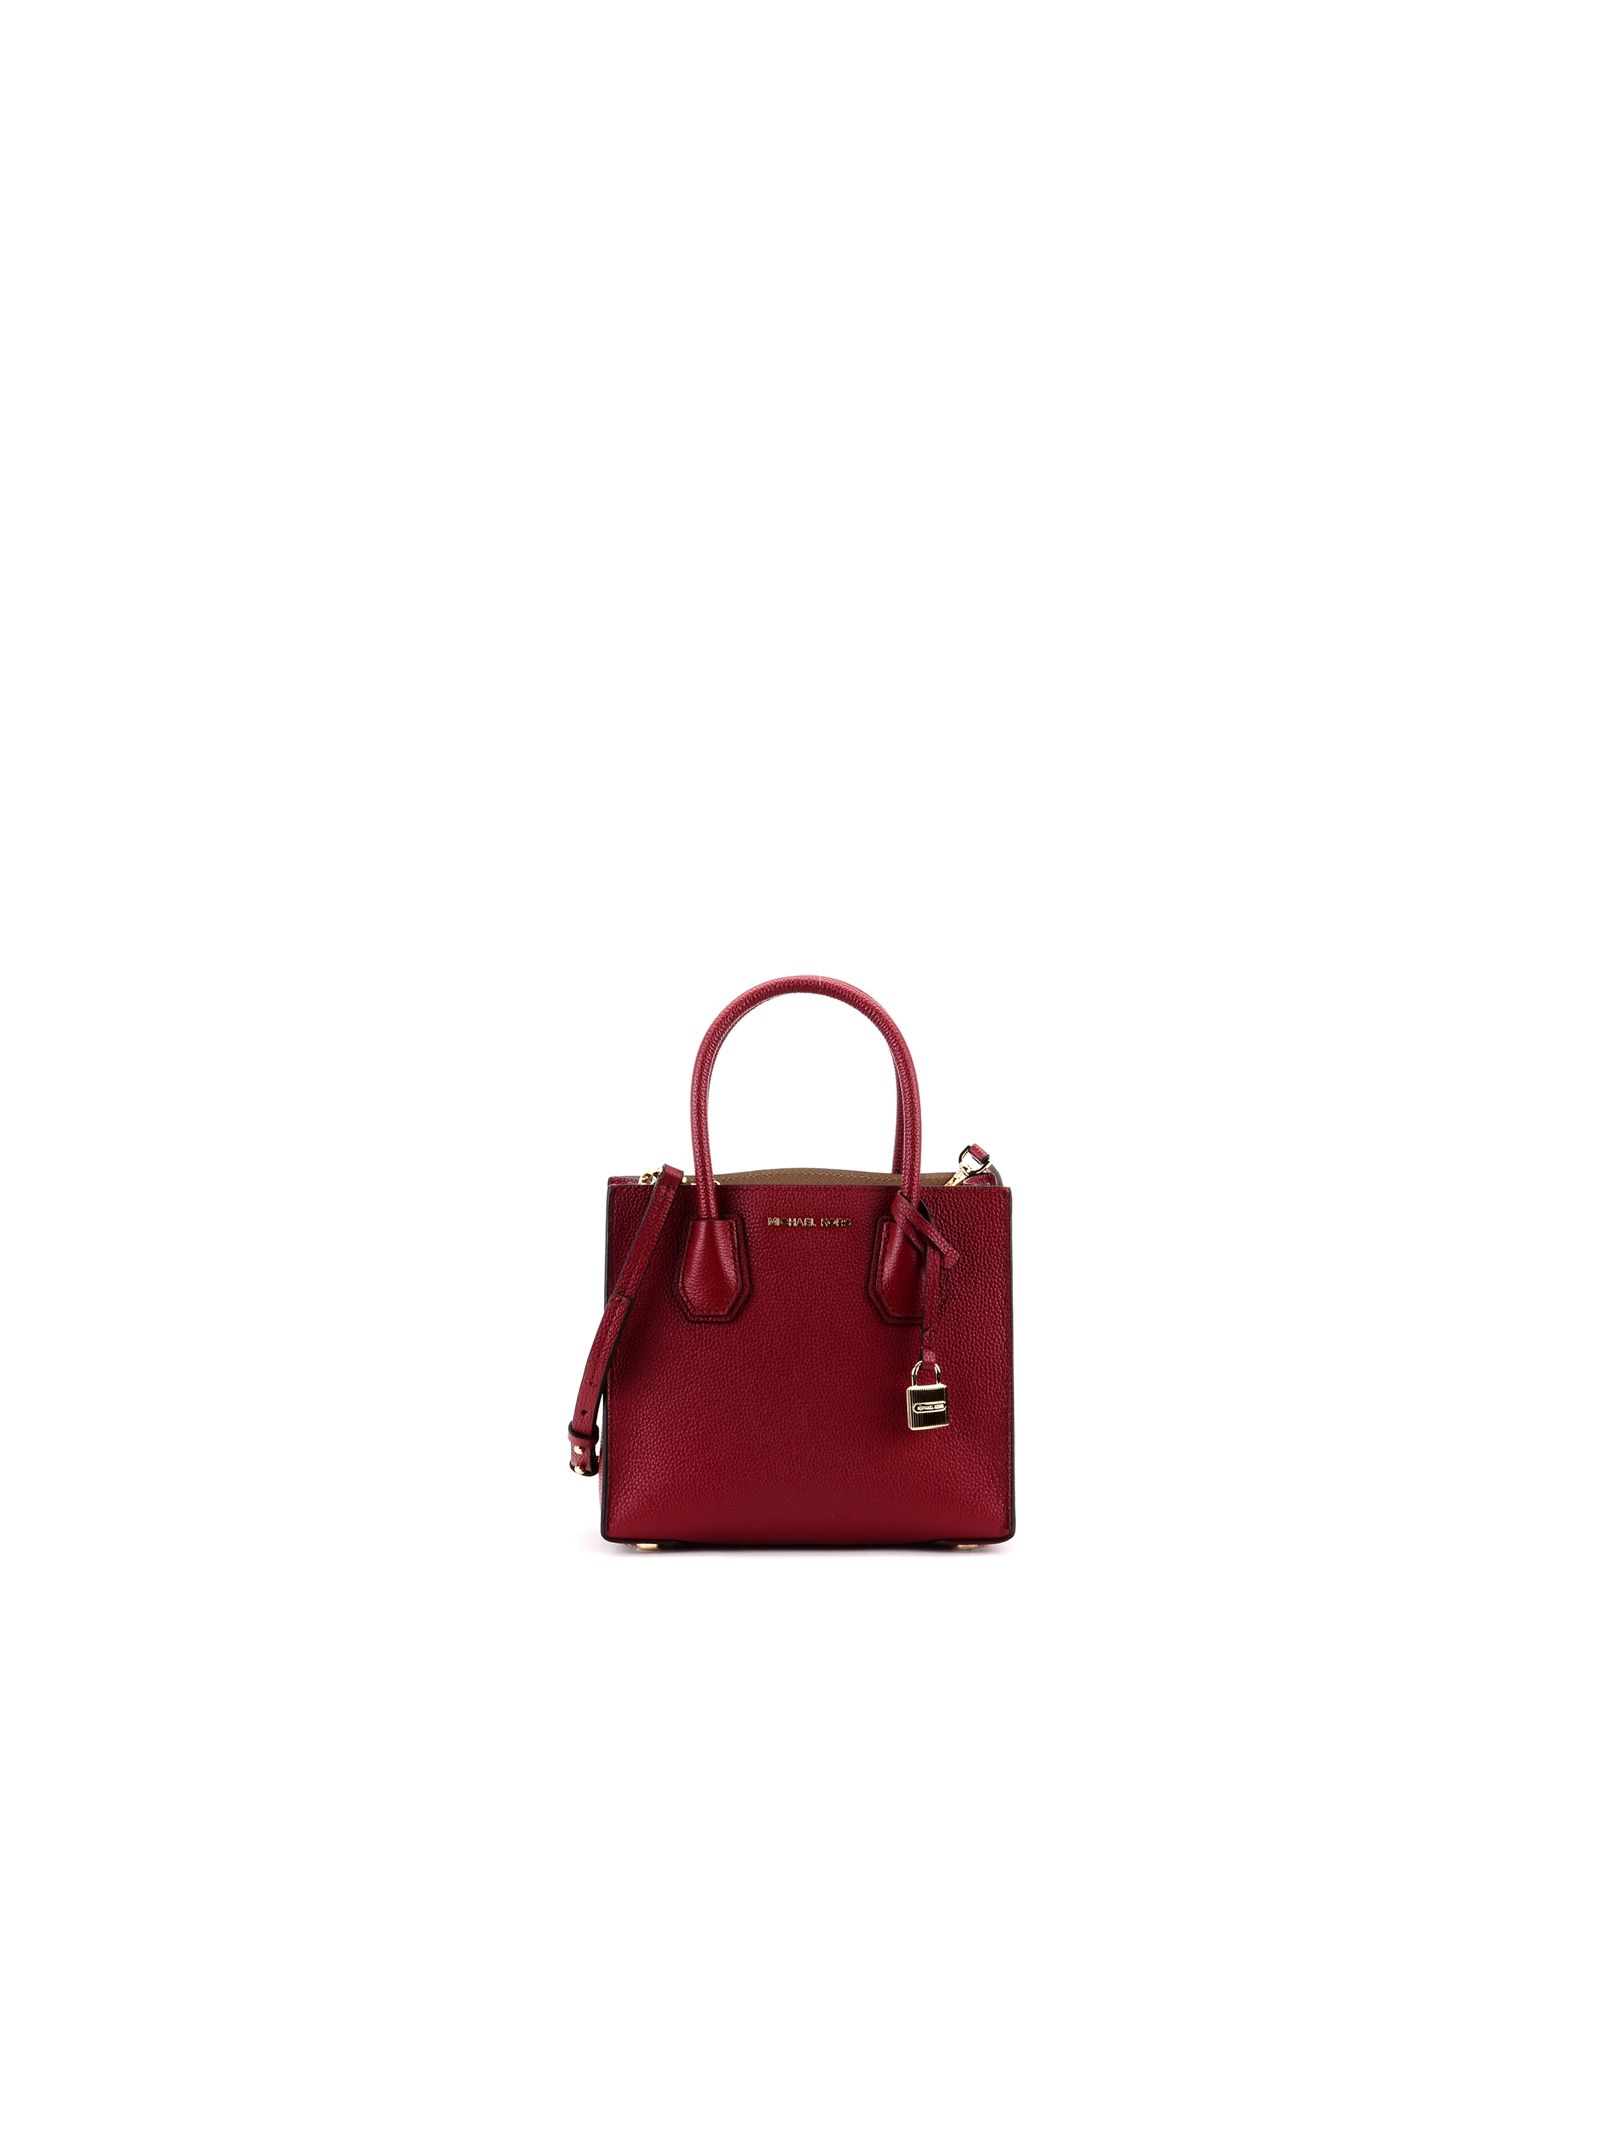 michael kors female cherry mercer medium tote